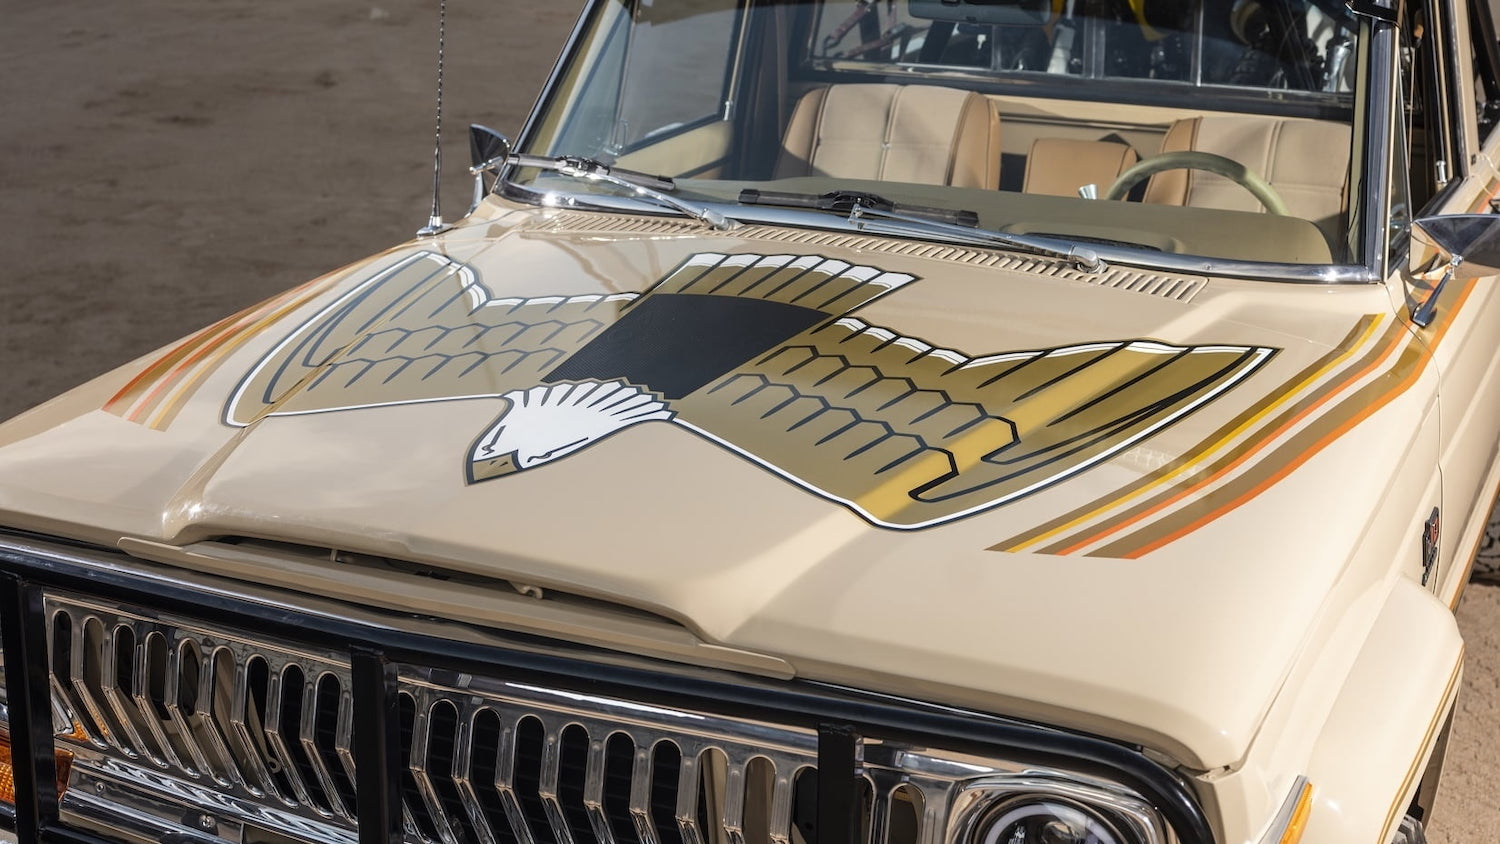 1978 Jeep J10 Truck front hood decal